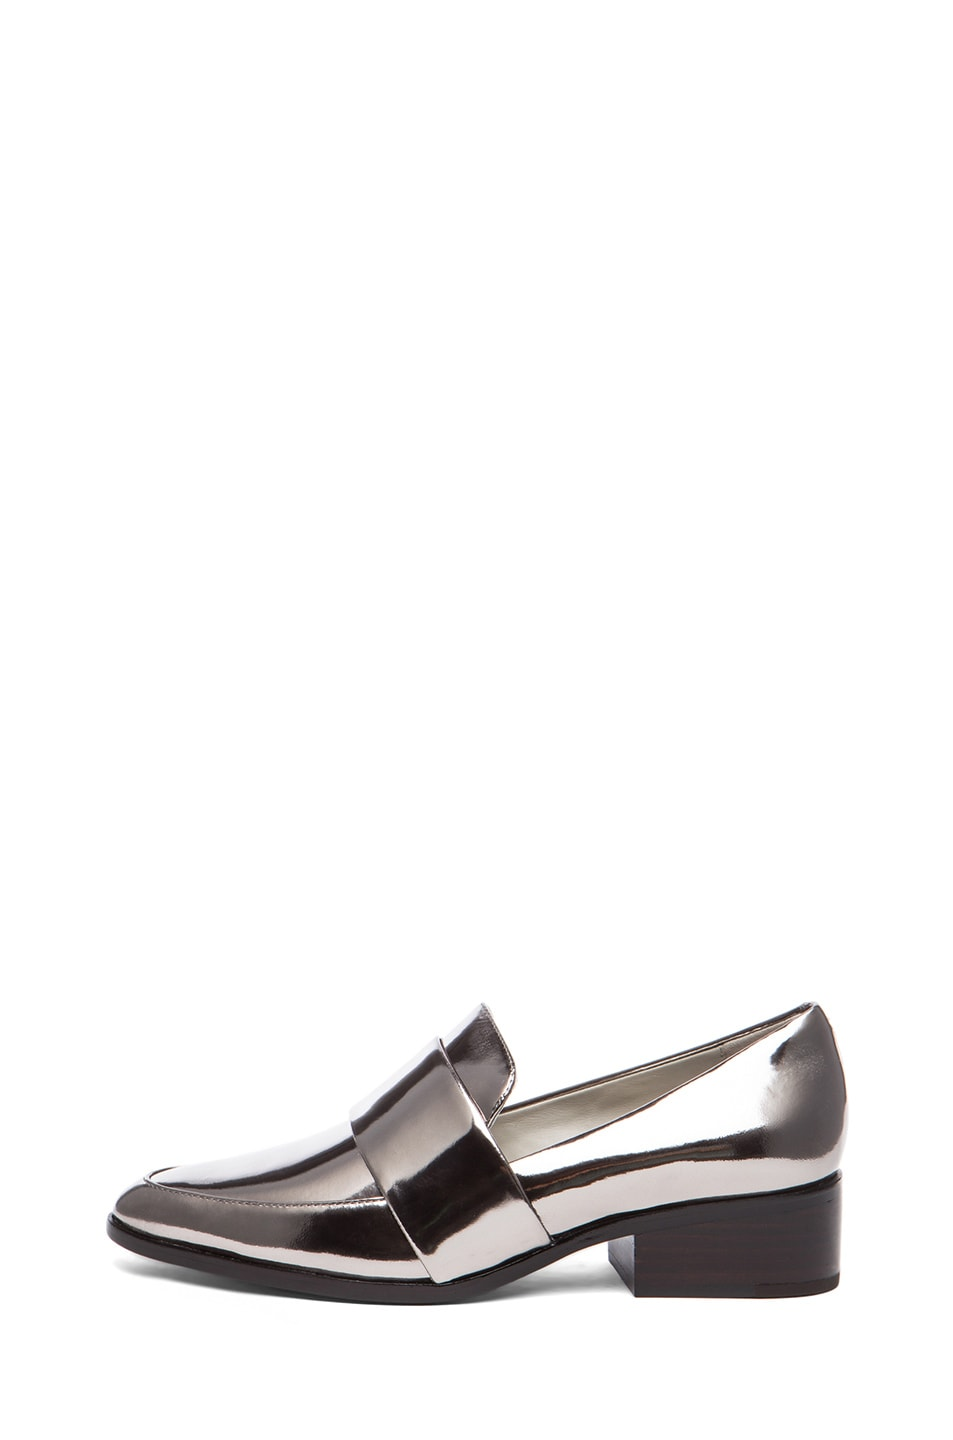 Image 1 of 3.1 phillip lim Quinn Metallic Leather Loafers in Gunmetal